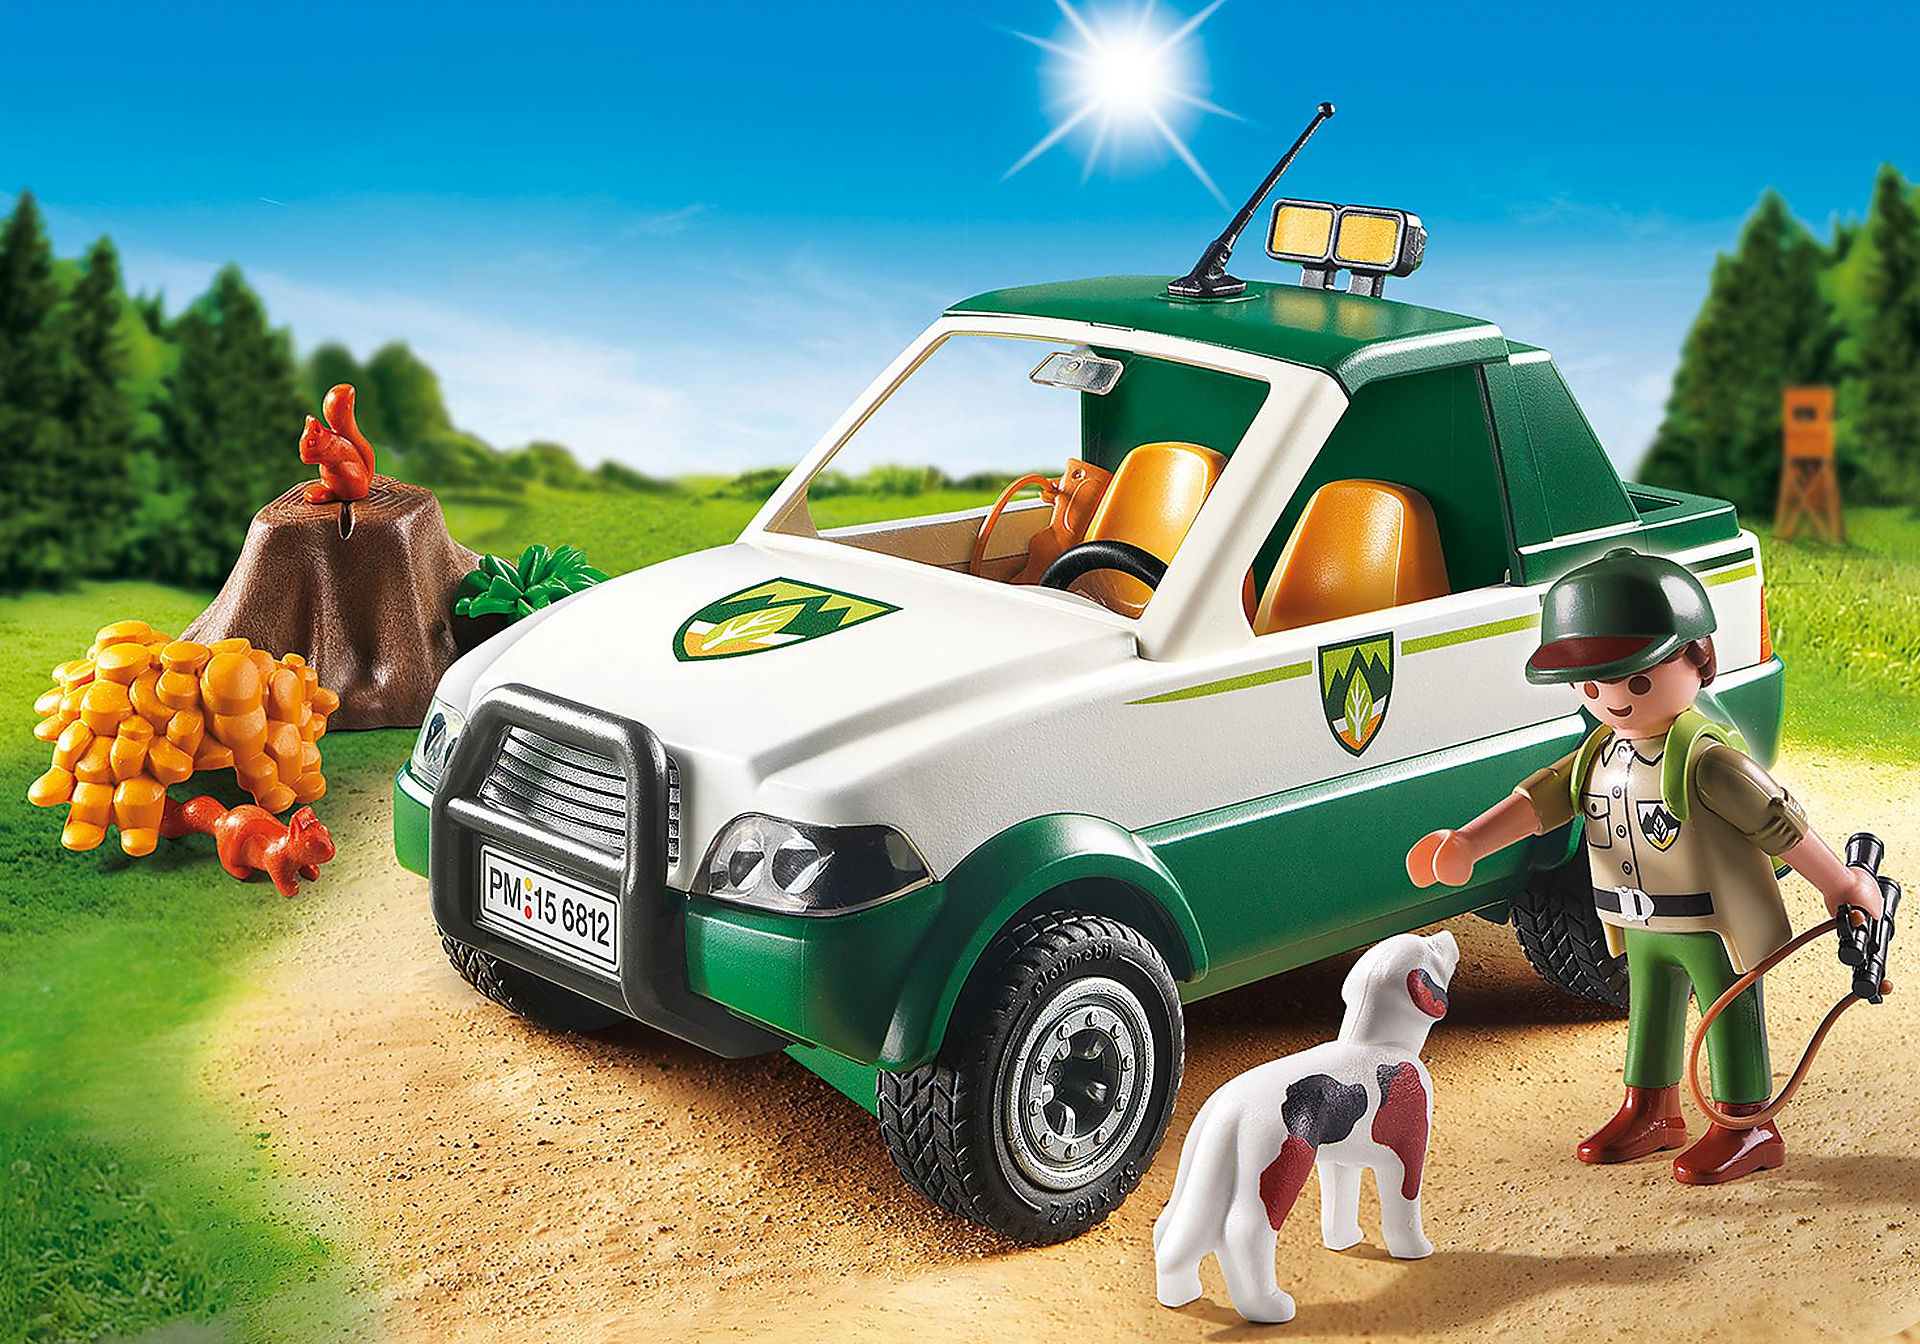 http://media.playmobil.com/i/playmobil/6812_product_detail/Guardabosque con Pick up